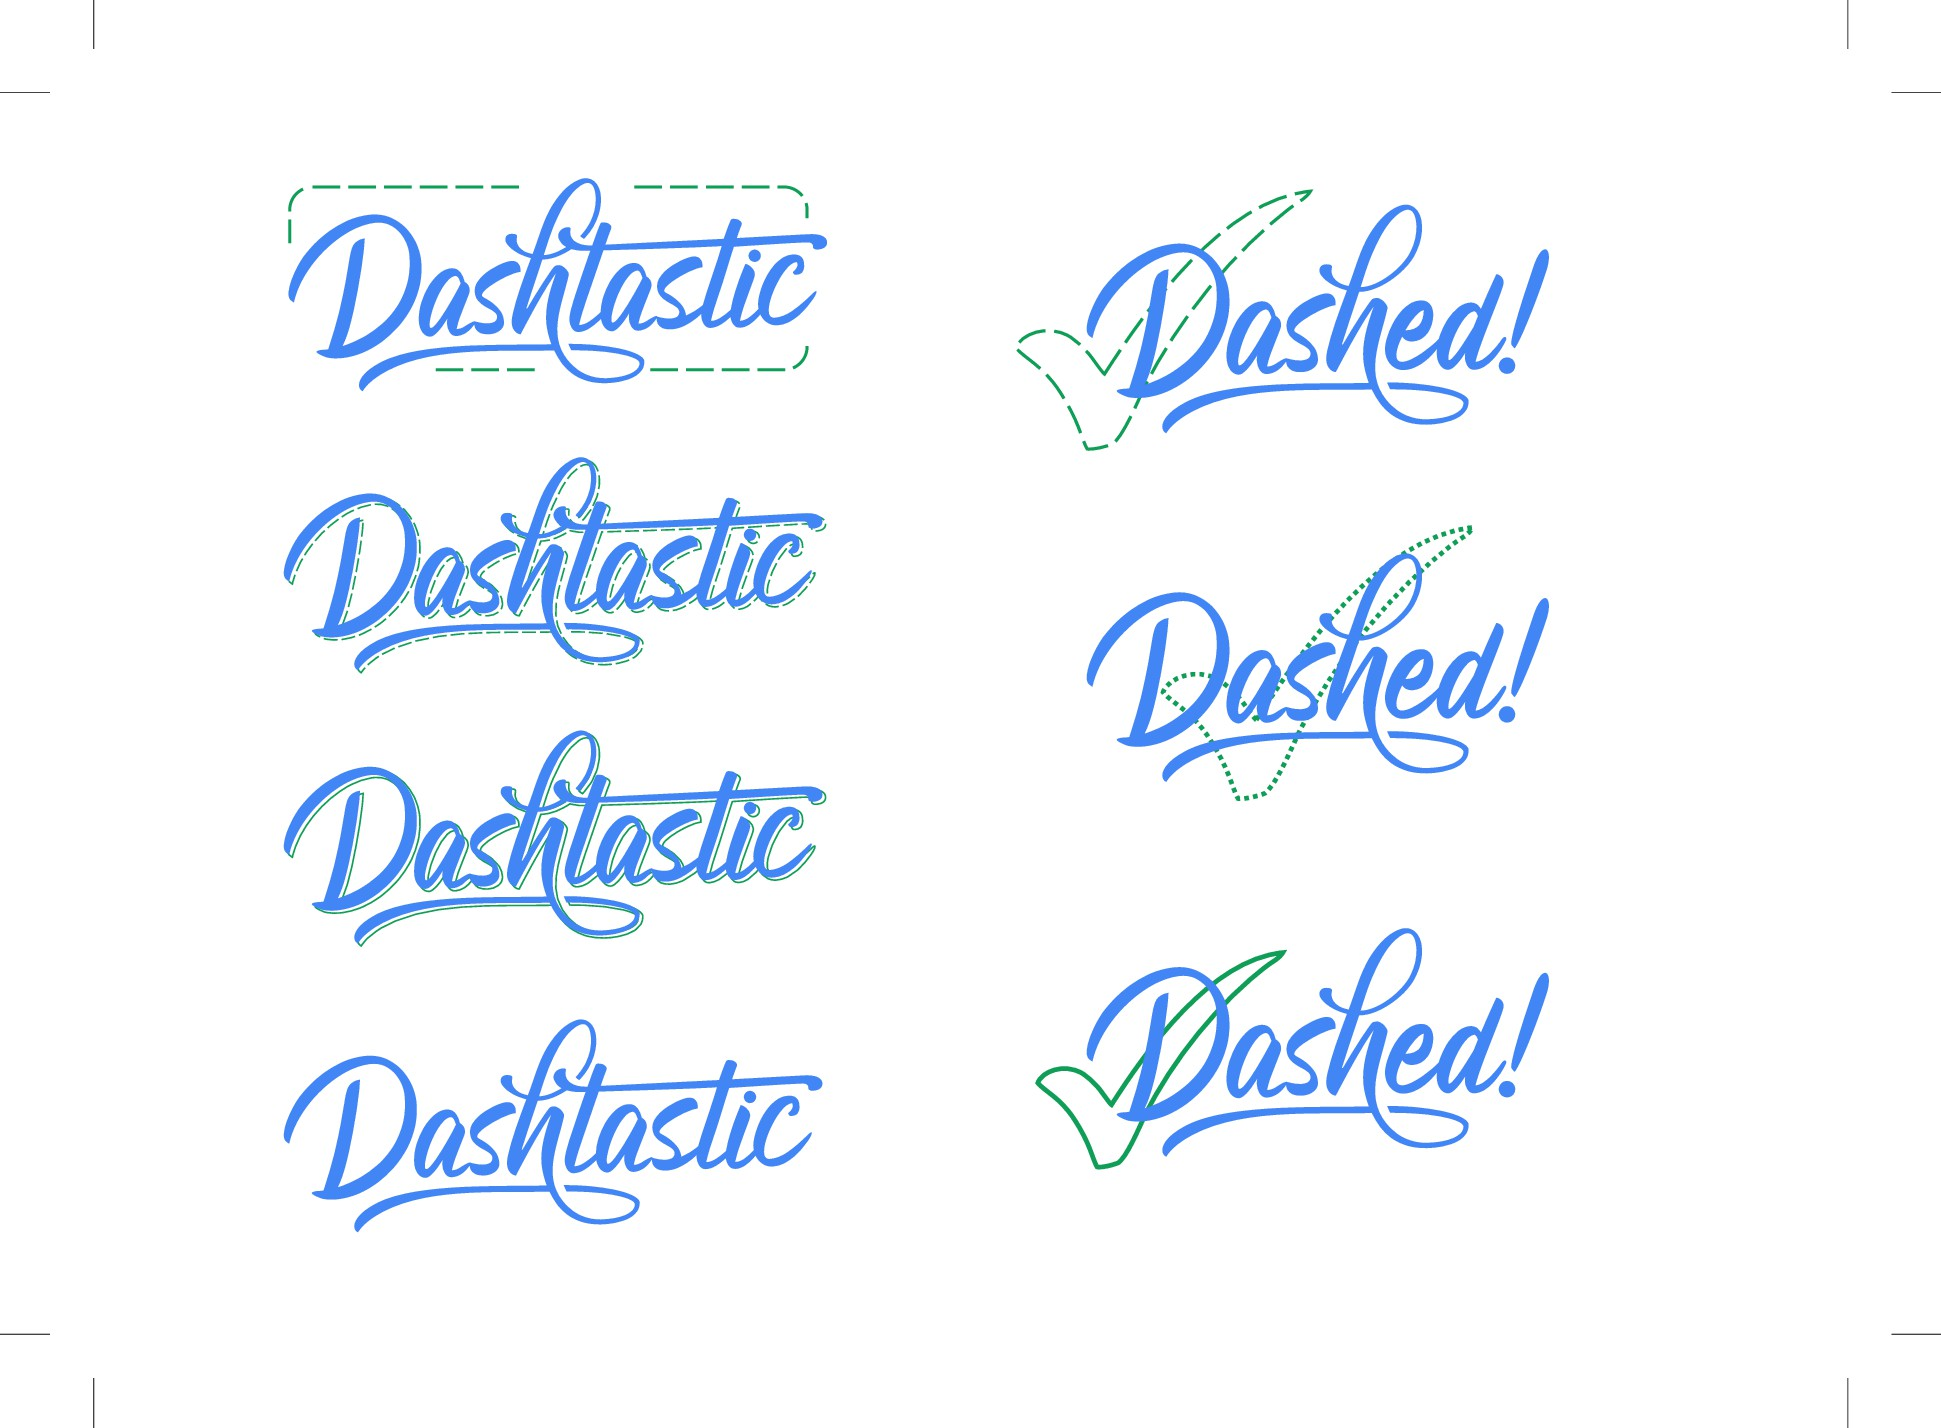 Dashtastic logo (wordmark)